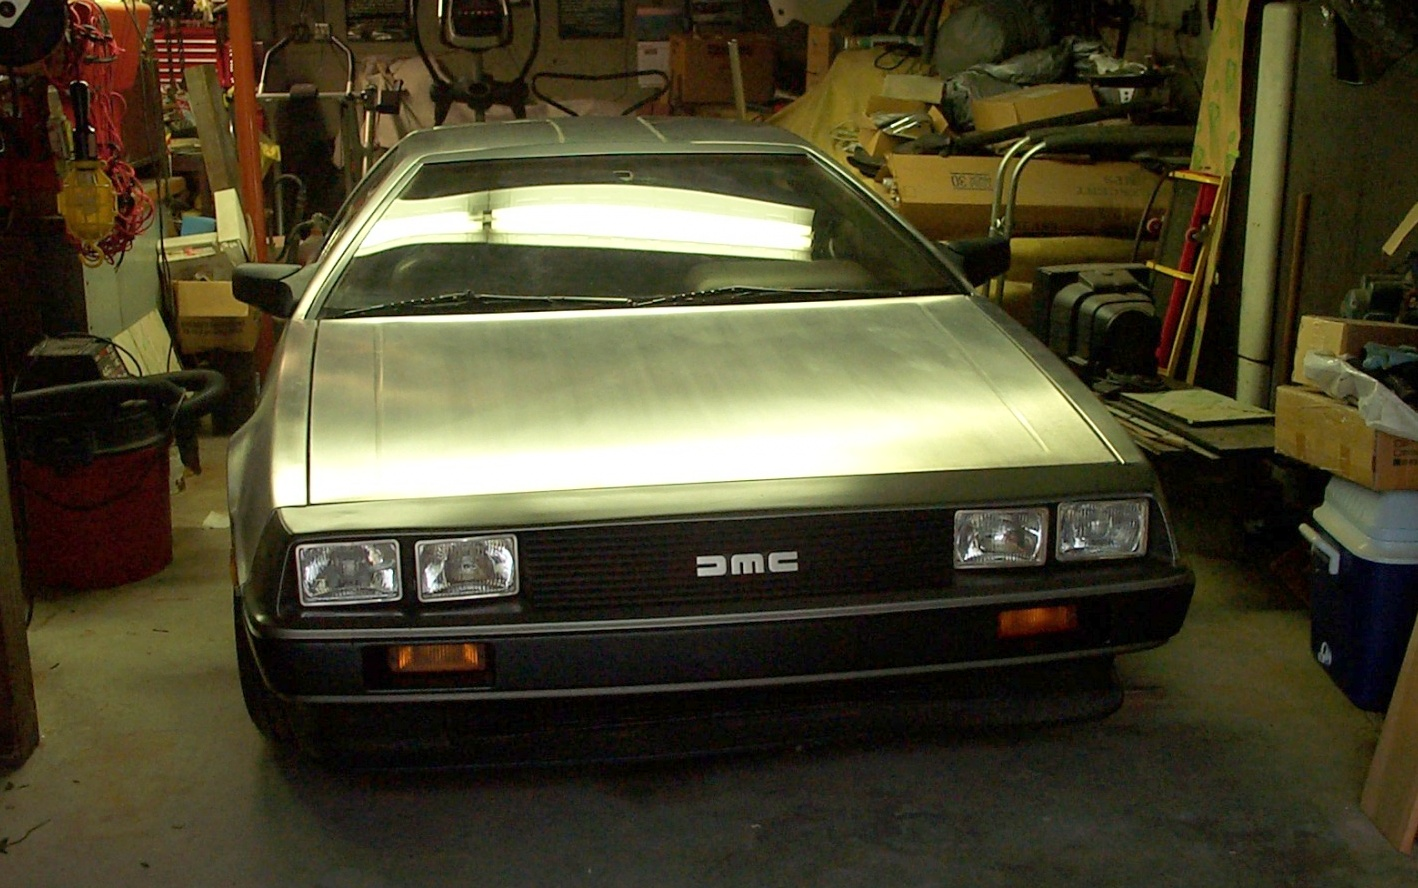 This 1981 DeLorean barn find has 5000miles on the clock and is in original condition.